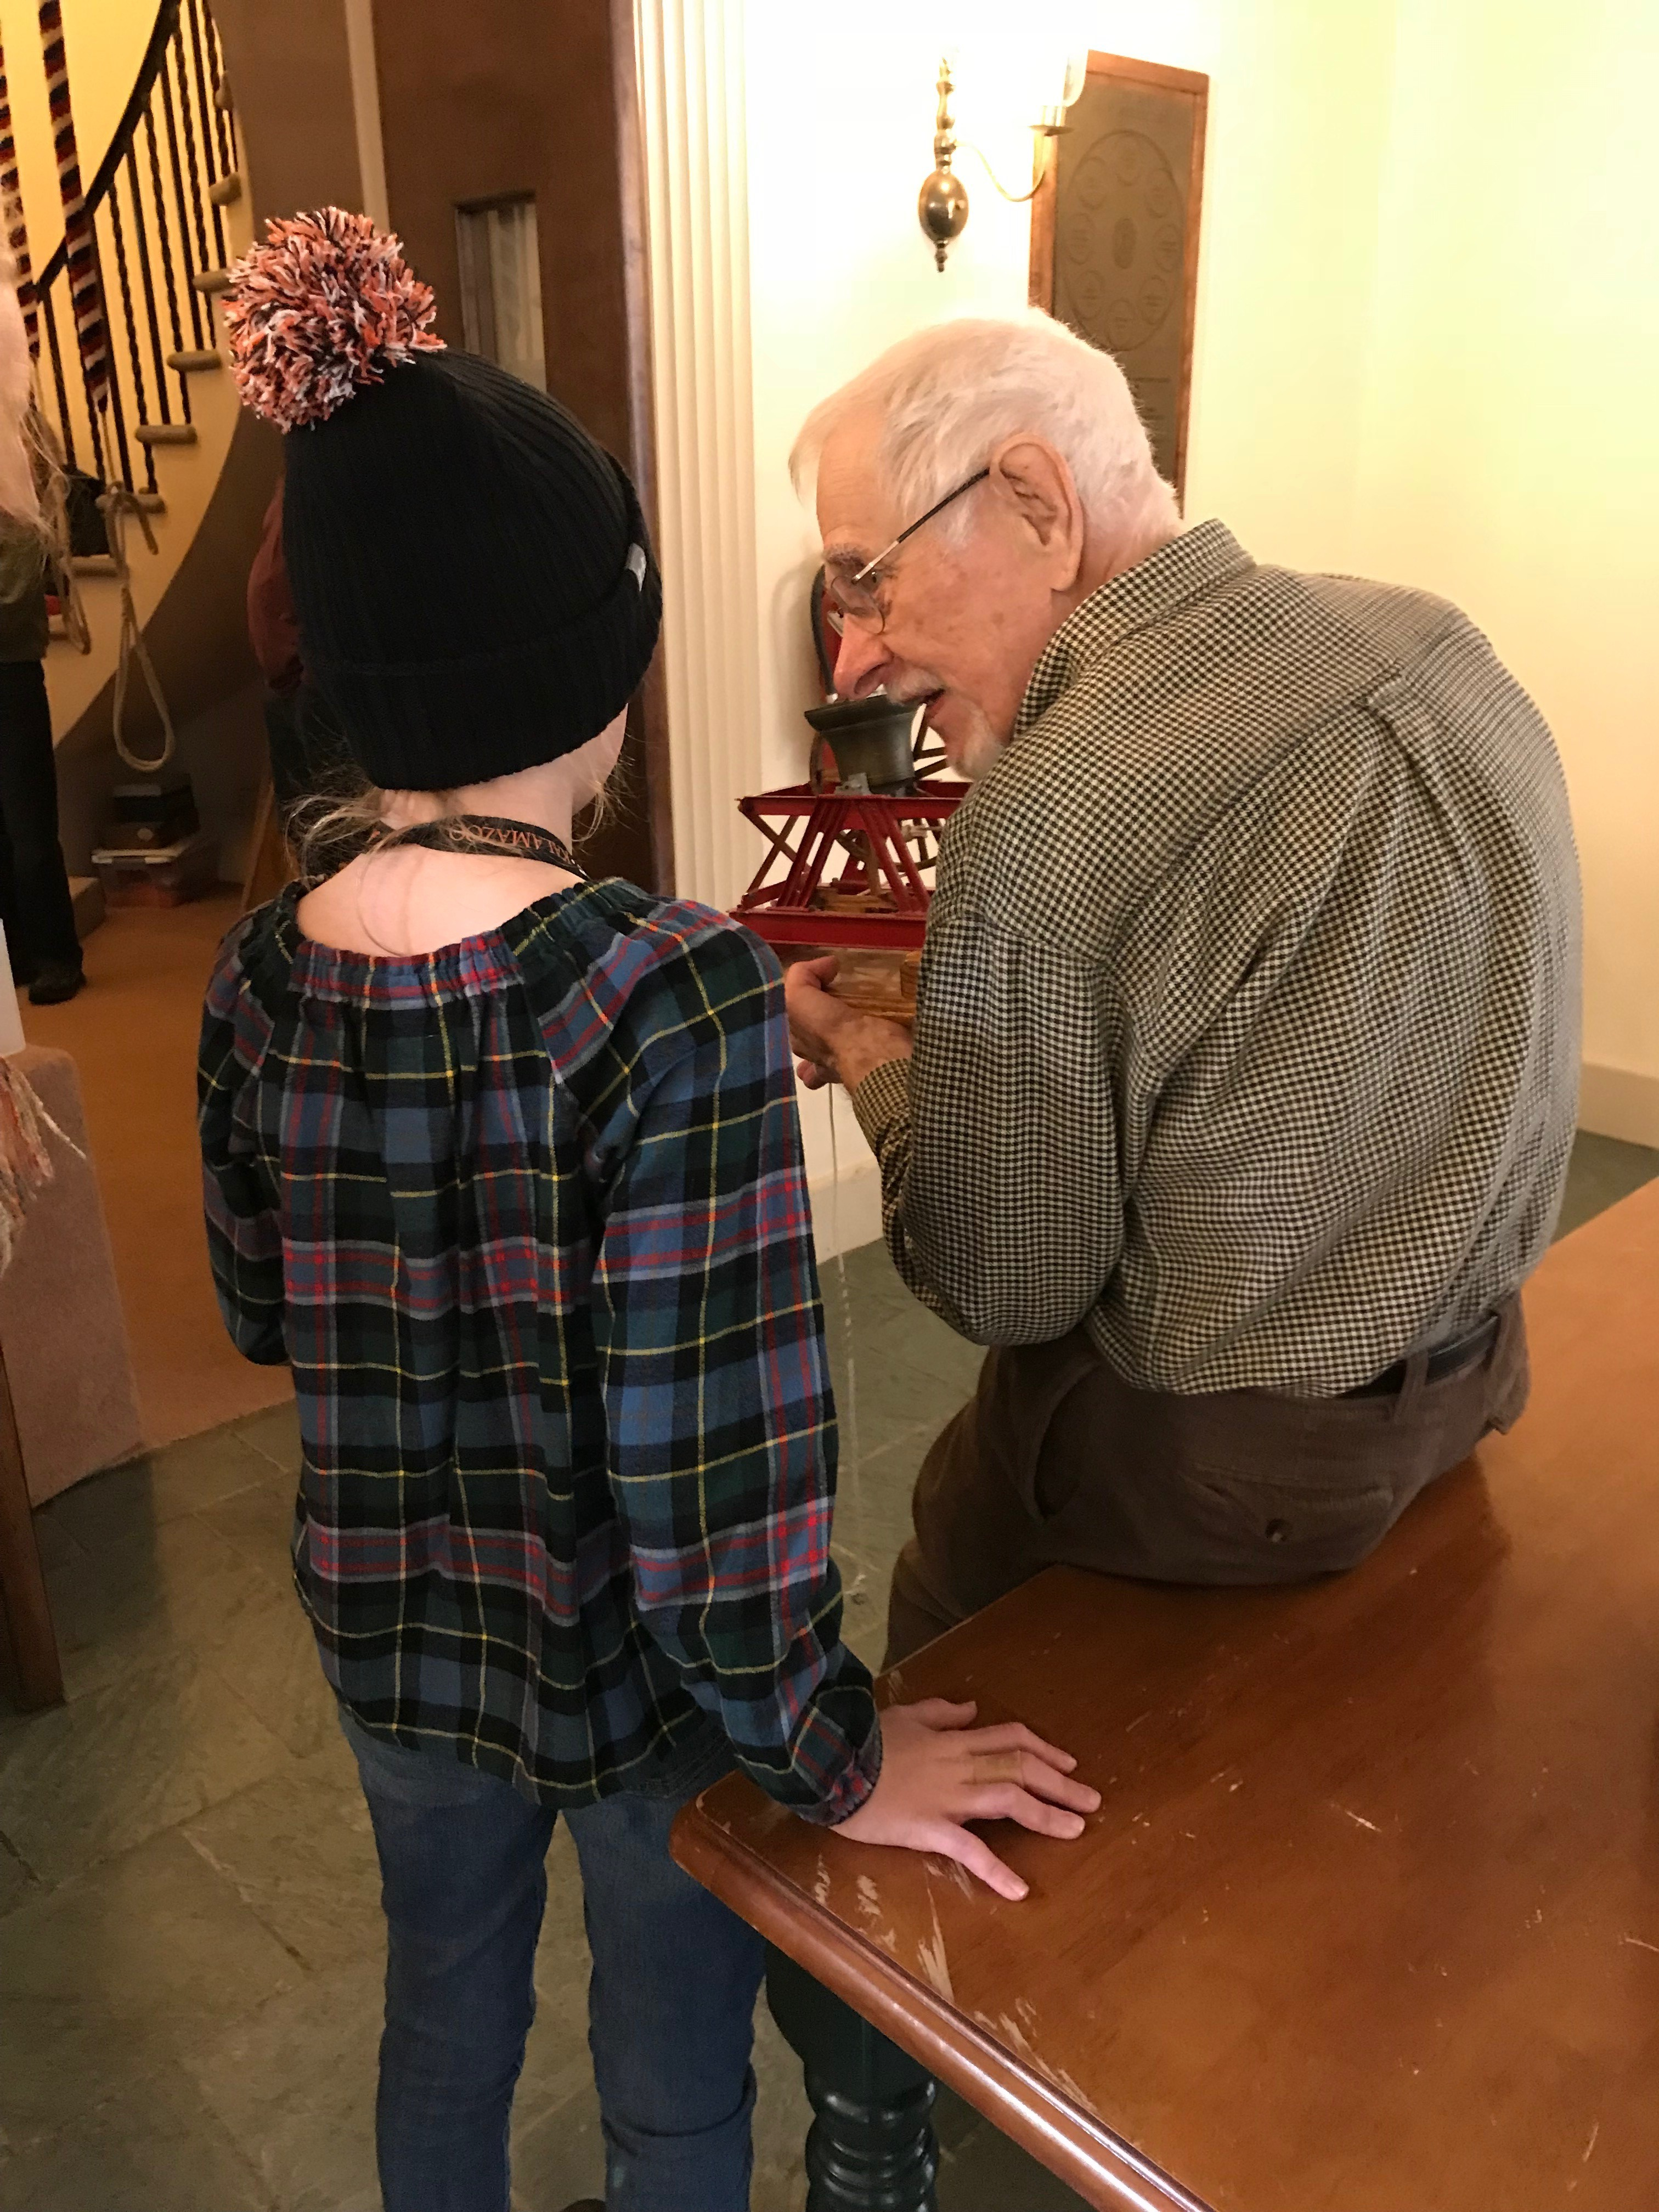 An older ringing explaining to a young girl of about 12 how a tower bell works.